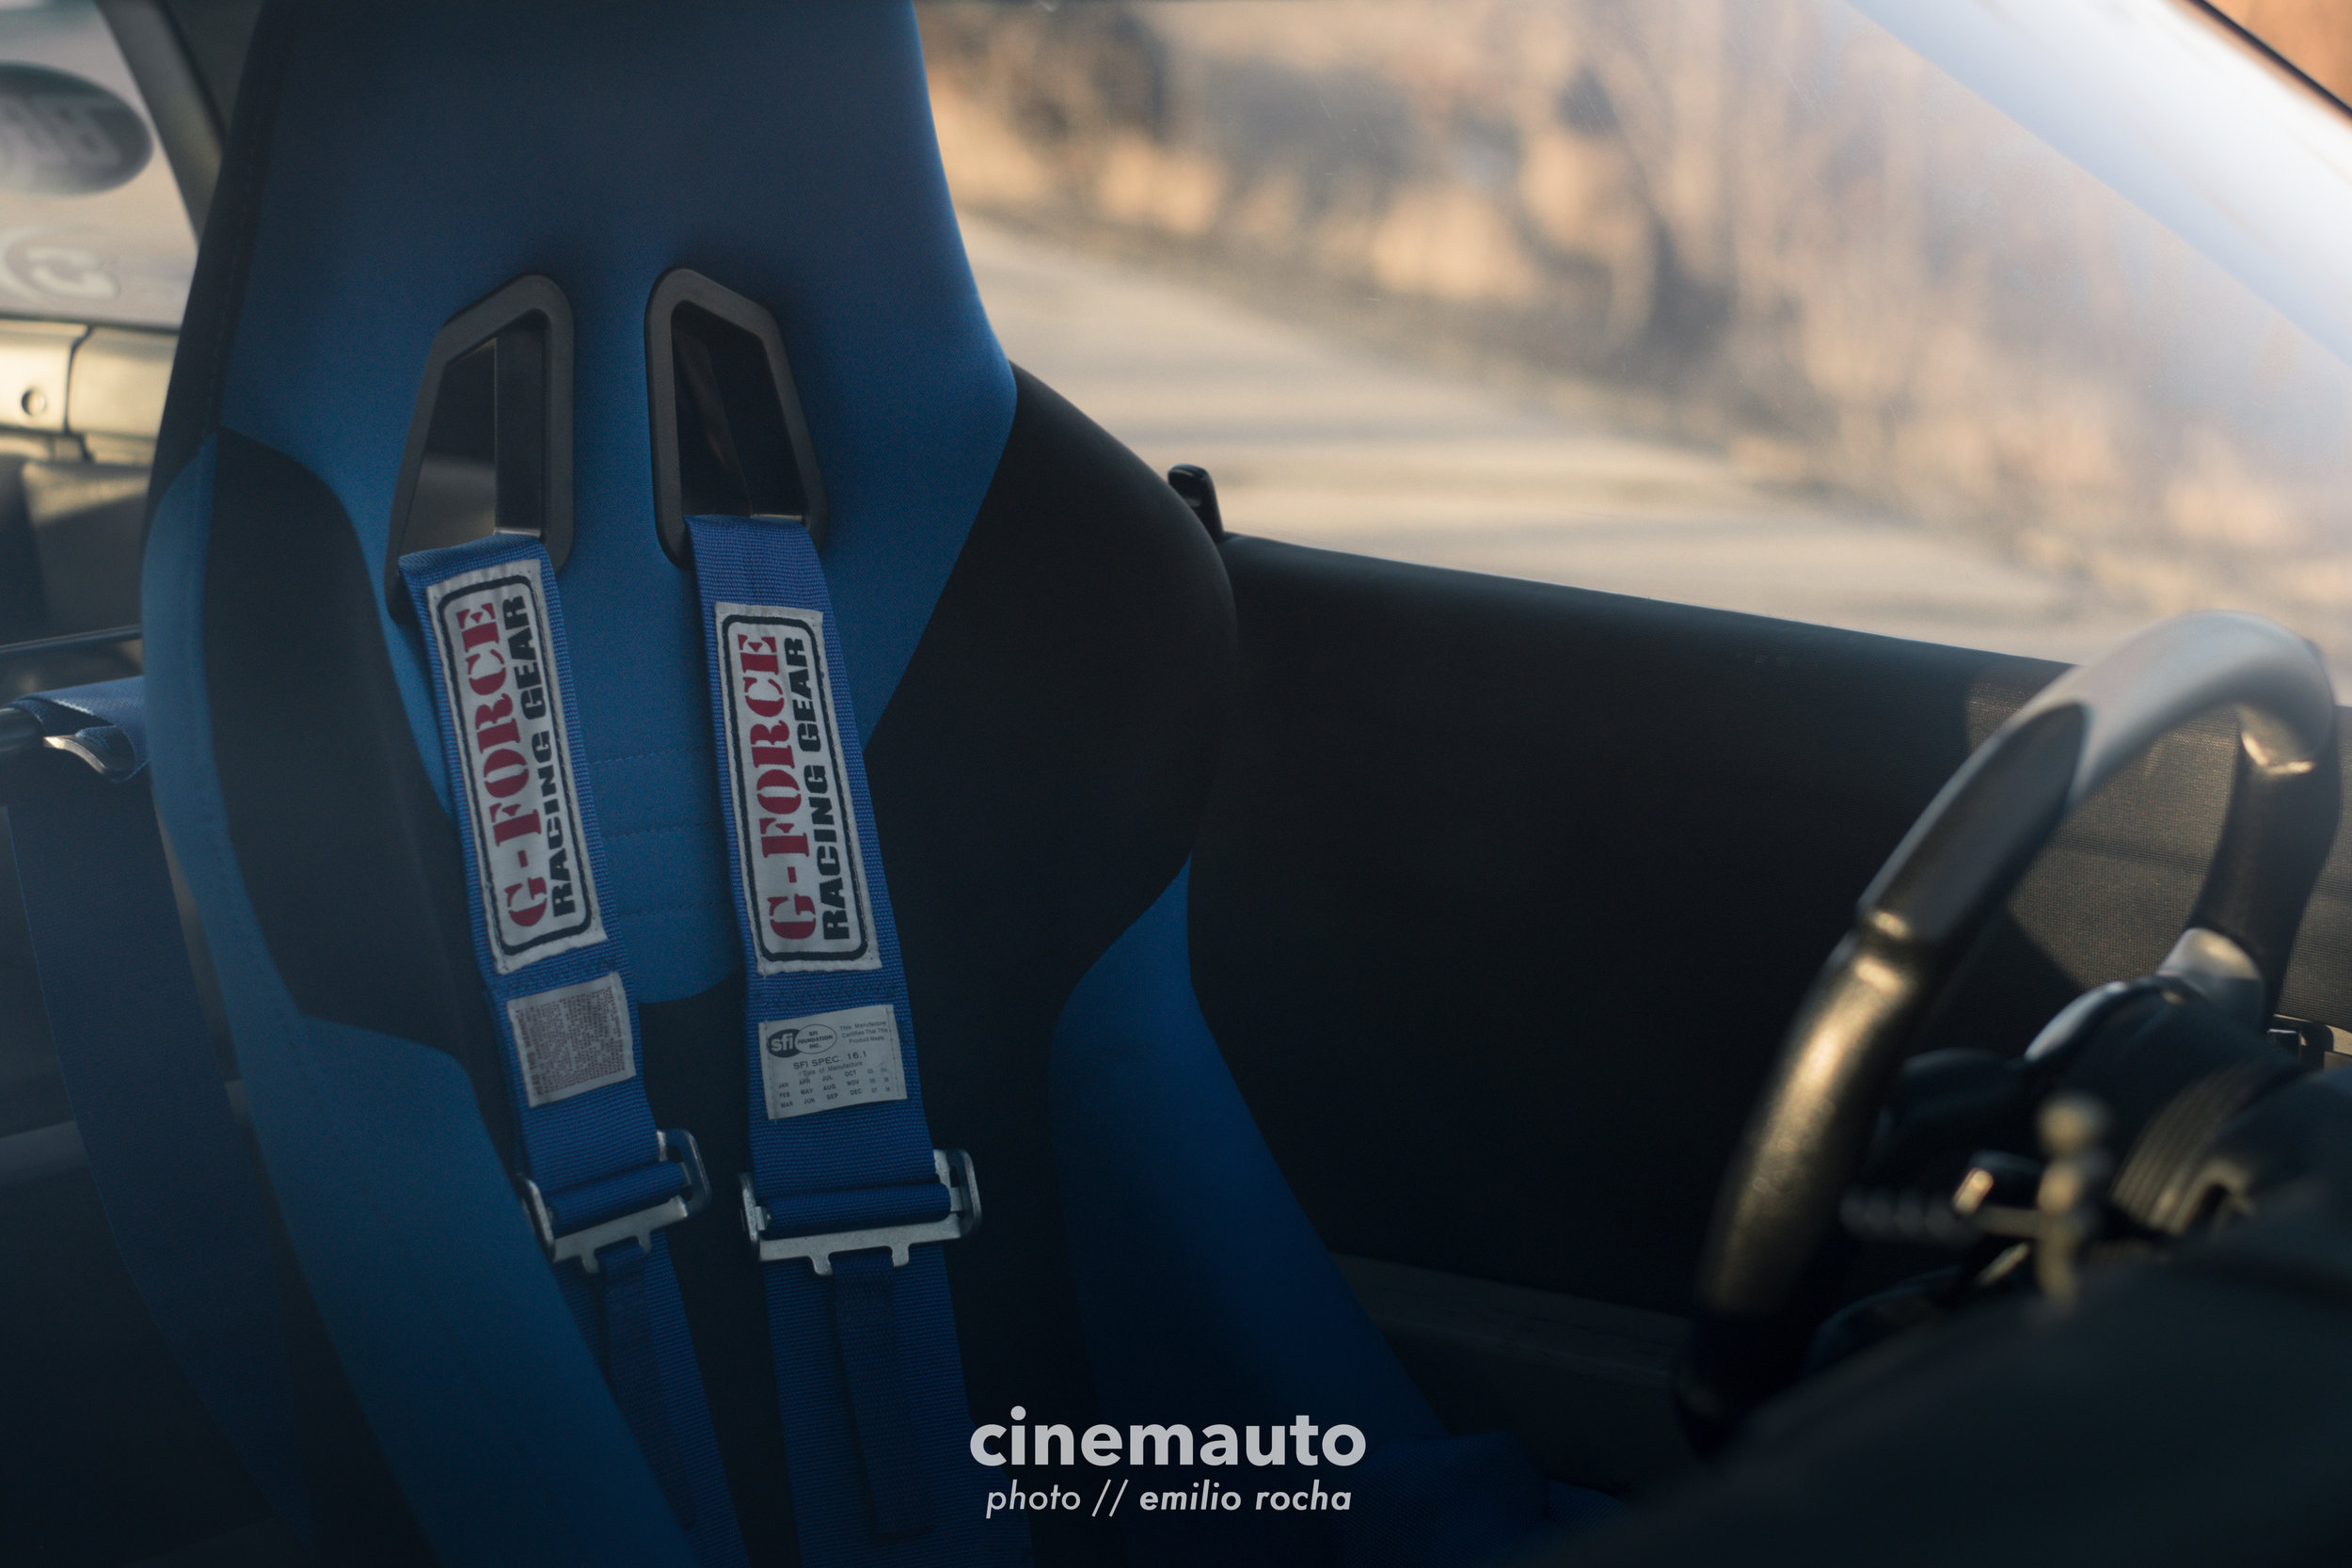 Cinemauto-RX7-10.jpg